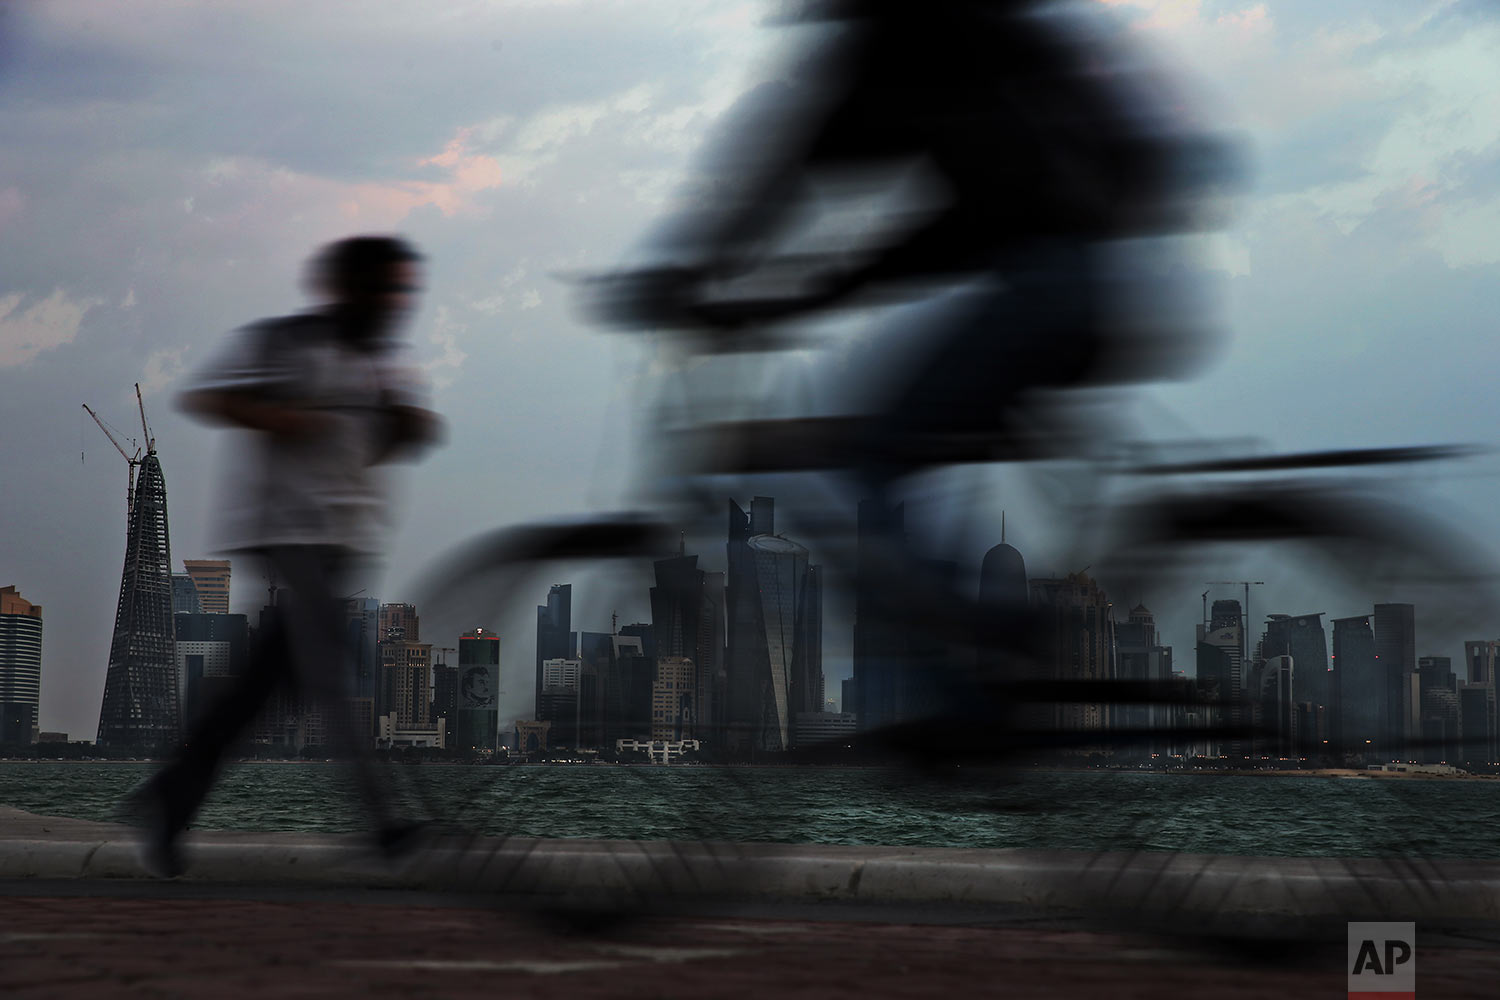 In this Sunday, Feb. 17, 2019 photo, people pass by the city skyline during their early morning workout in Doha, Qatar. (AP Photo/Kamran Jebreili)